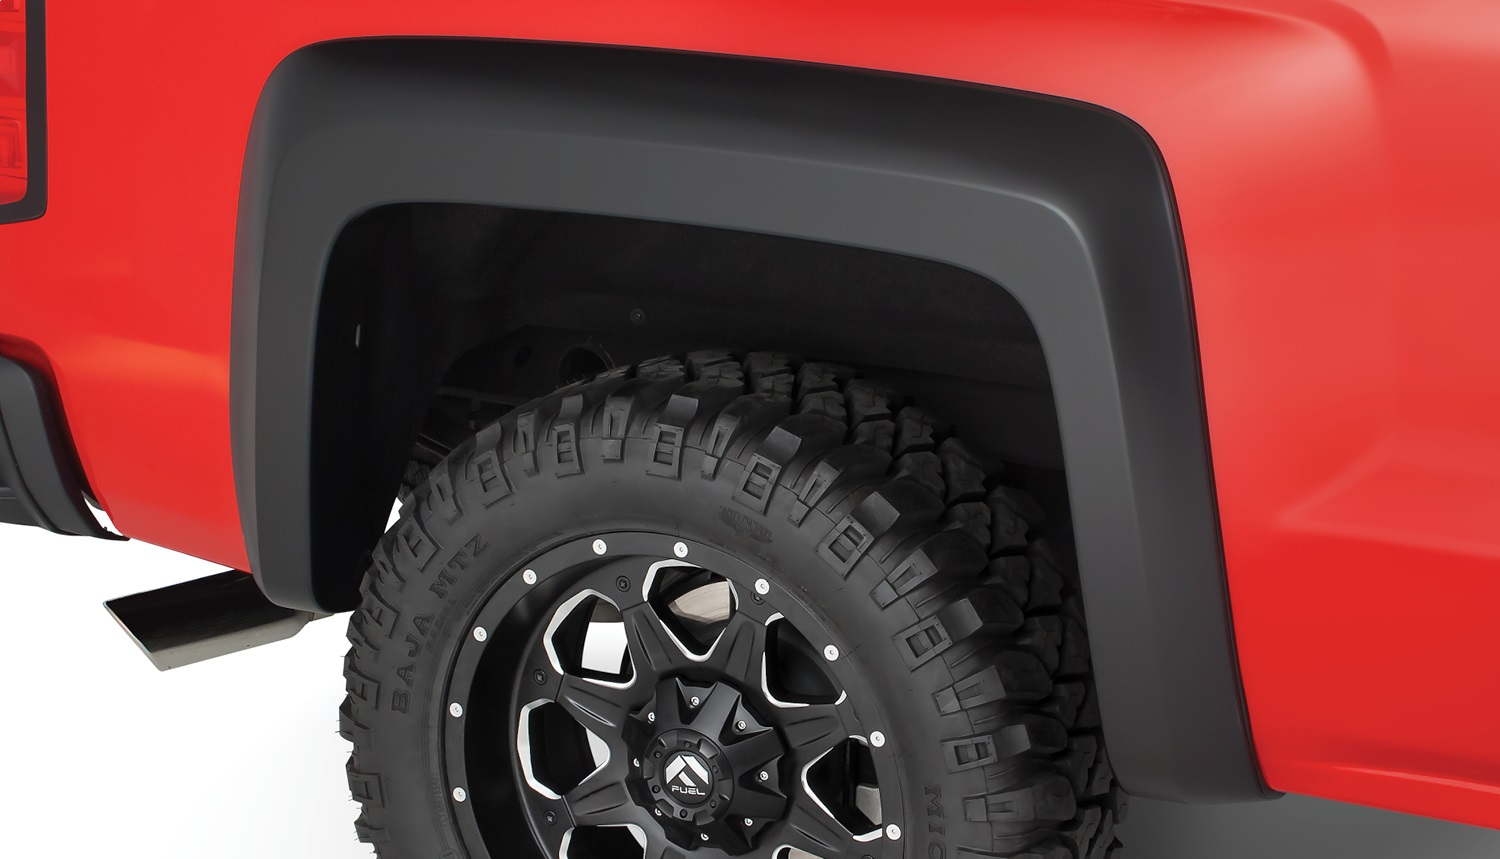 Extend-A-Fenderr Flares, 4 pc., Front Tire Coverage 2.5 in., Front Height 6.5 in., Rear Tire Coverage 2.5 in., Rear Height 6.5 in., Smooth Finish, Black